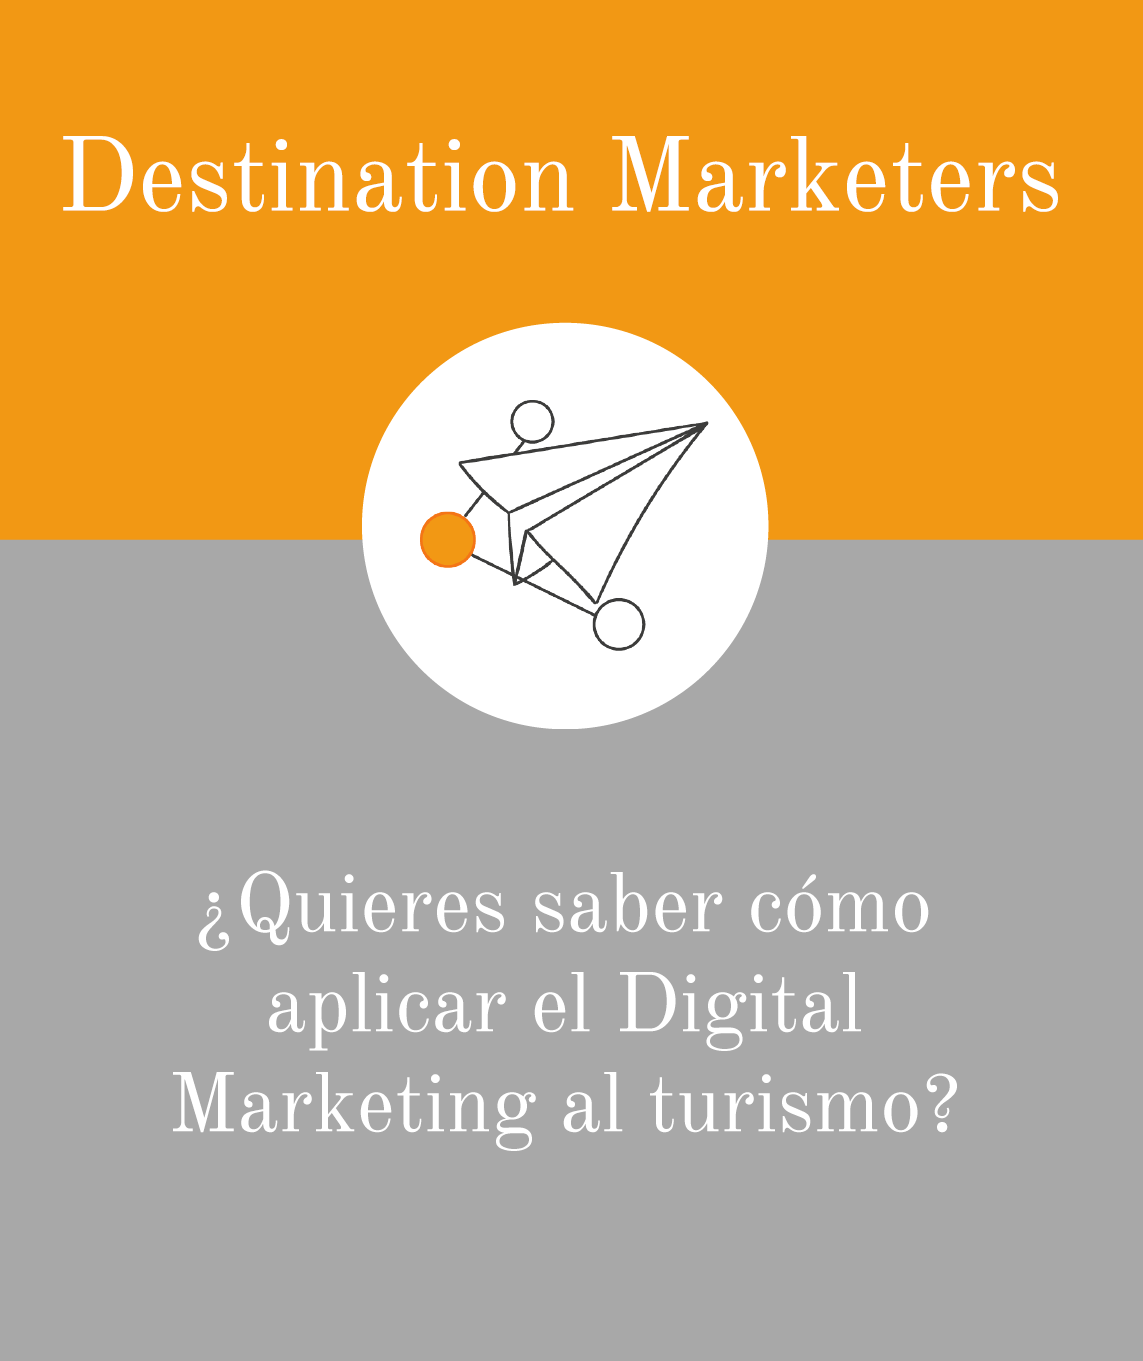 Destination Marketers